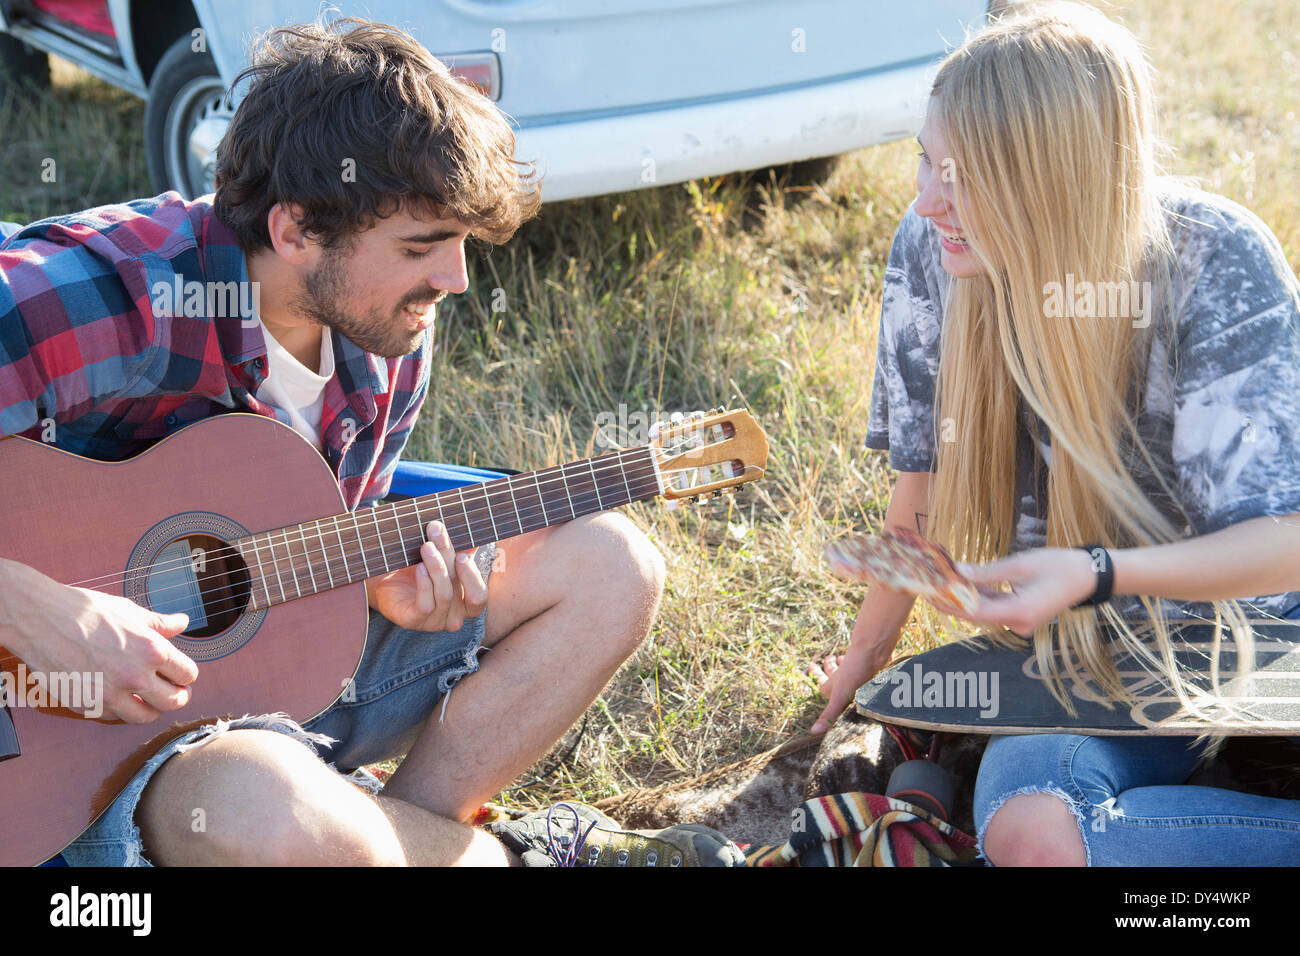 Young man playing guitar for young woman - Stock Image